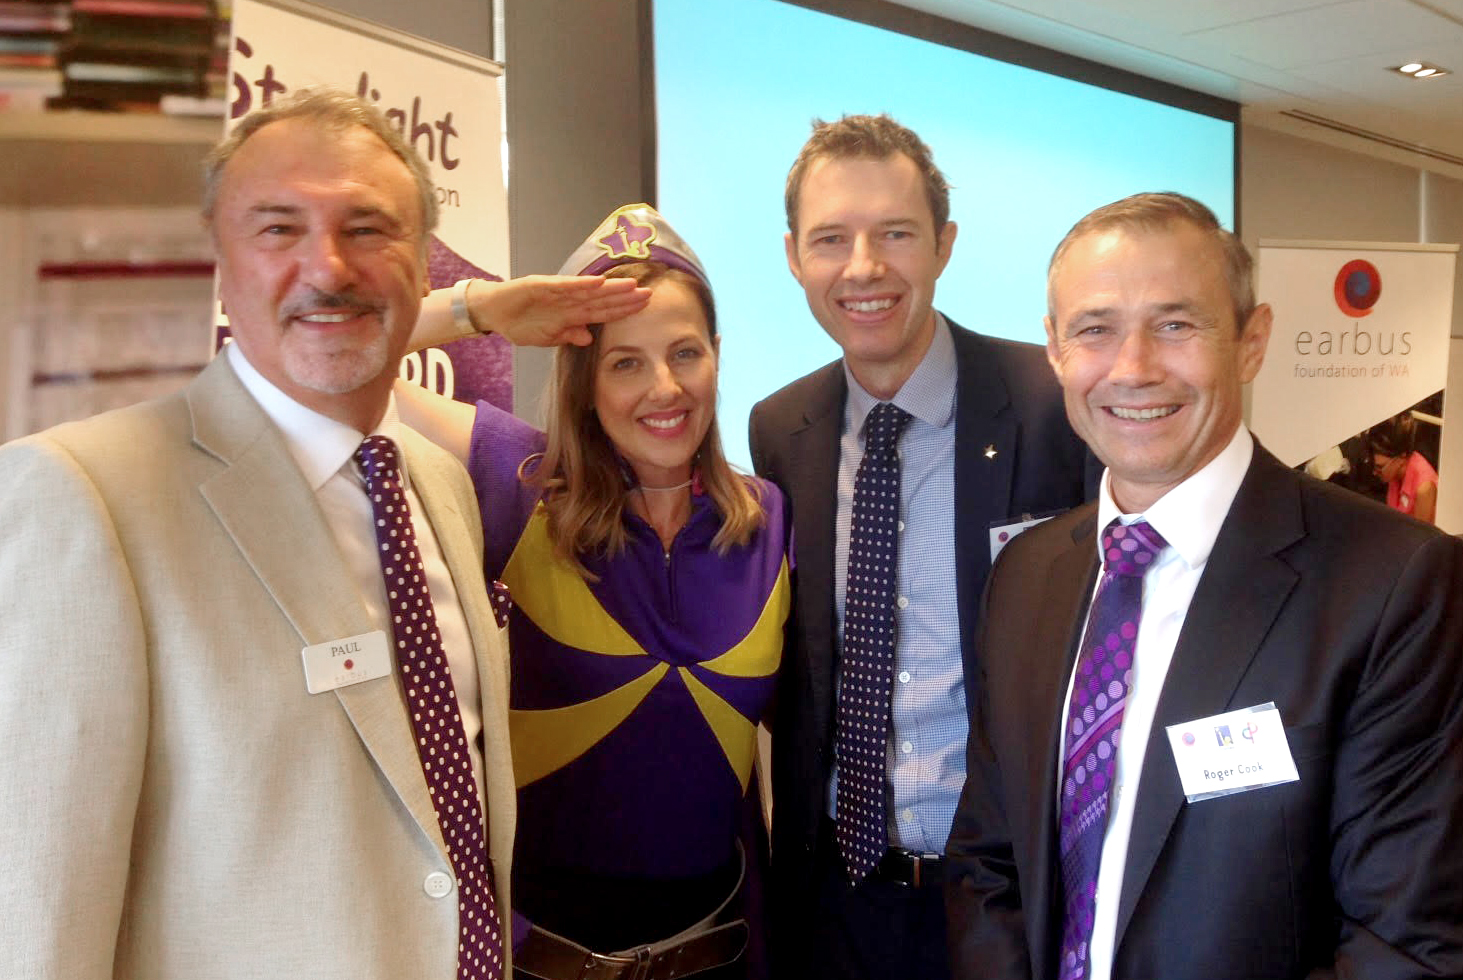 Earbus CEO Paul Higginbotham with Captain Starlight, MC Jack Cullity and new Minister for Health Roger Cook.